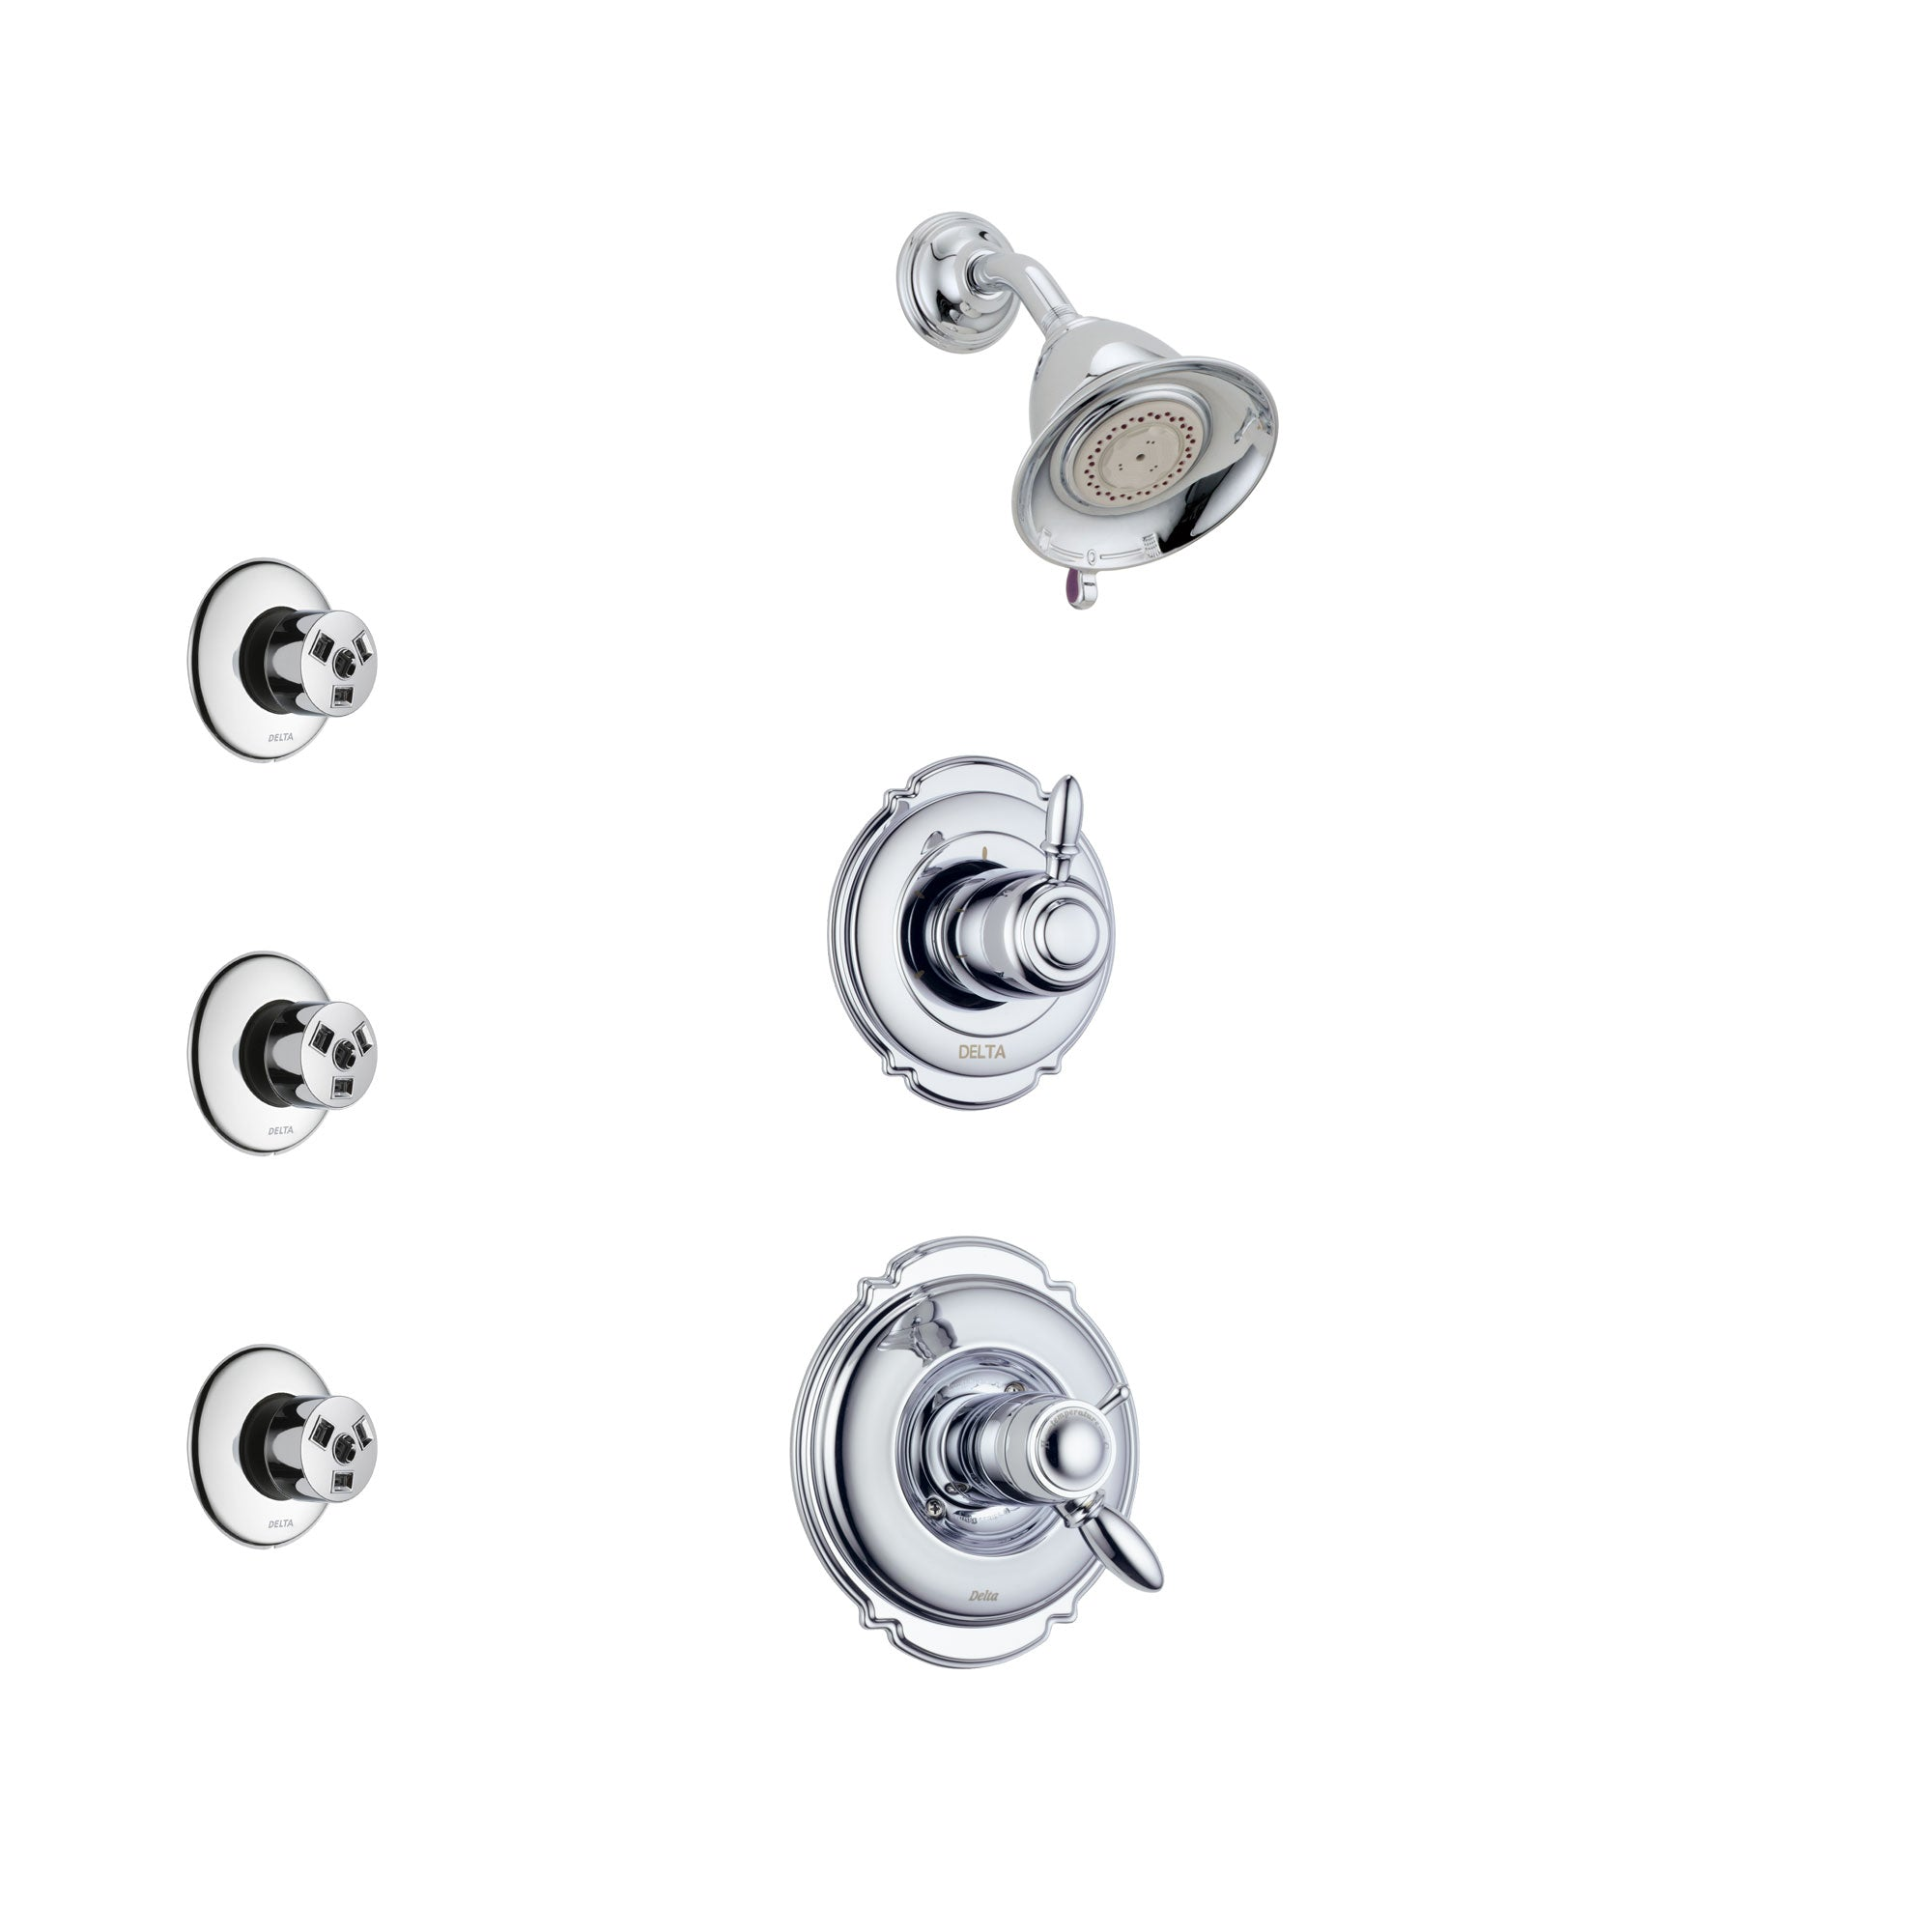 Delta Victorian Chrome Finish Shower System with Dual Thermostatic Control Handle, 3-Setting Diverter, Showerhead, and 3 Body Sprays SS17T25512